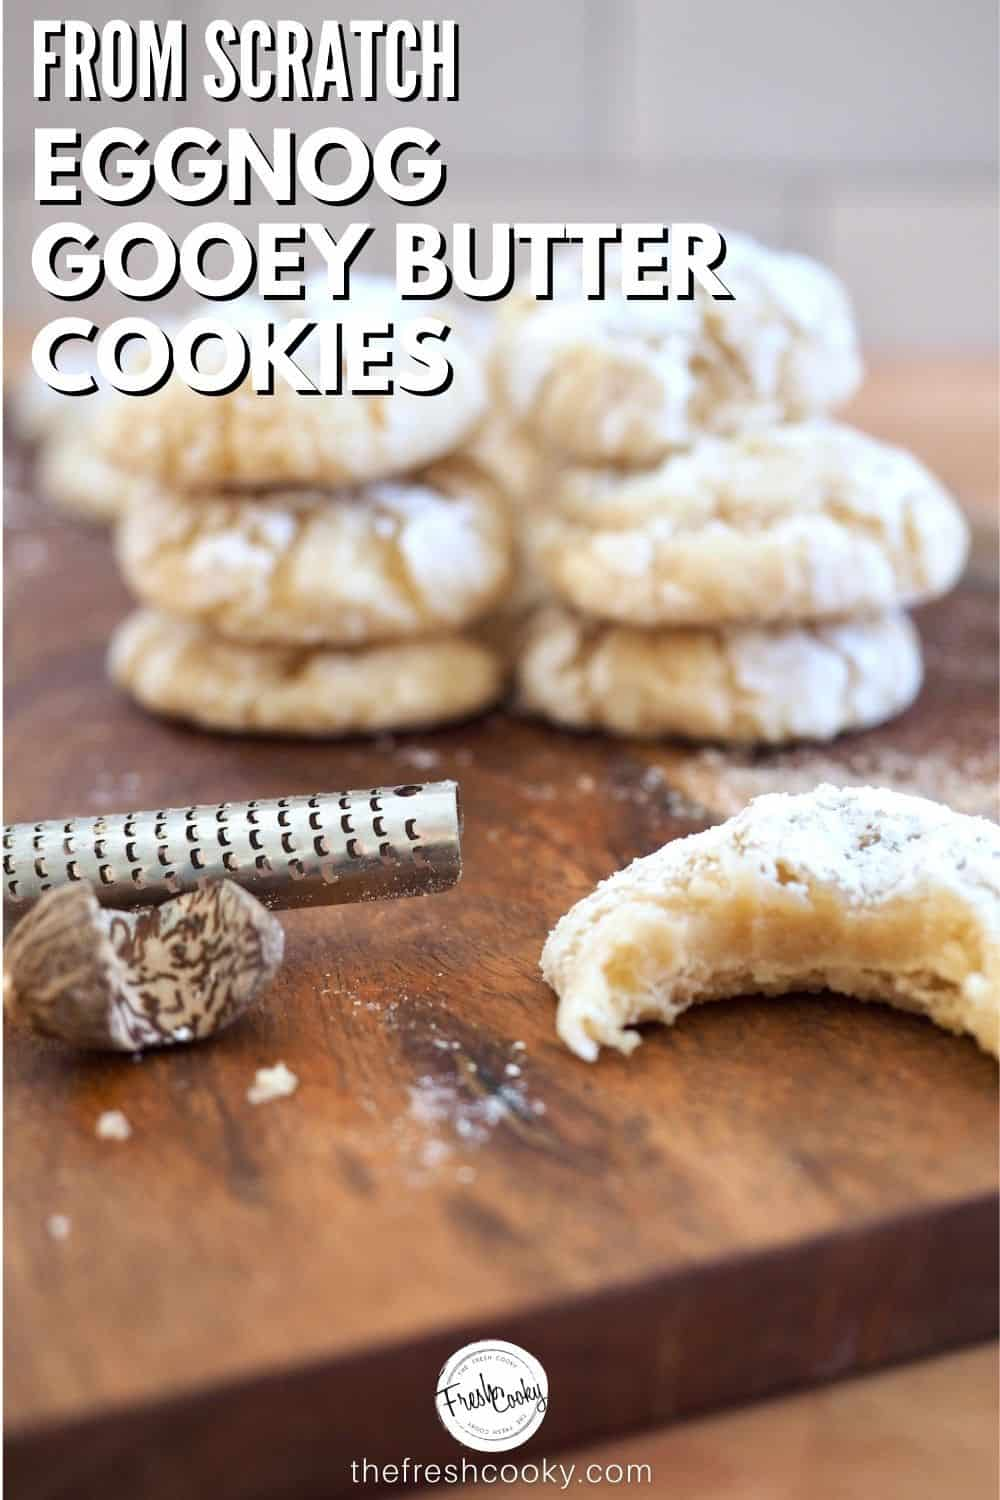 Your new favorite Christmas cookie recipe! The best gooey butter cookies - holiday style with eggnog! Great for the holidays! #thefreshcooky #buttercookies #christmasbaking via @thefreshcooky